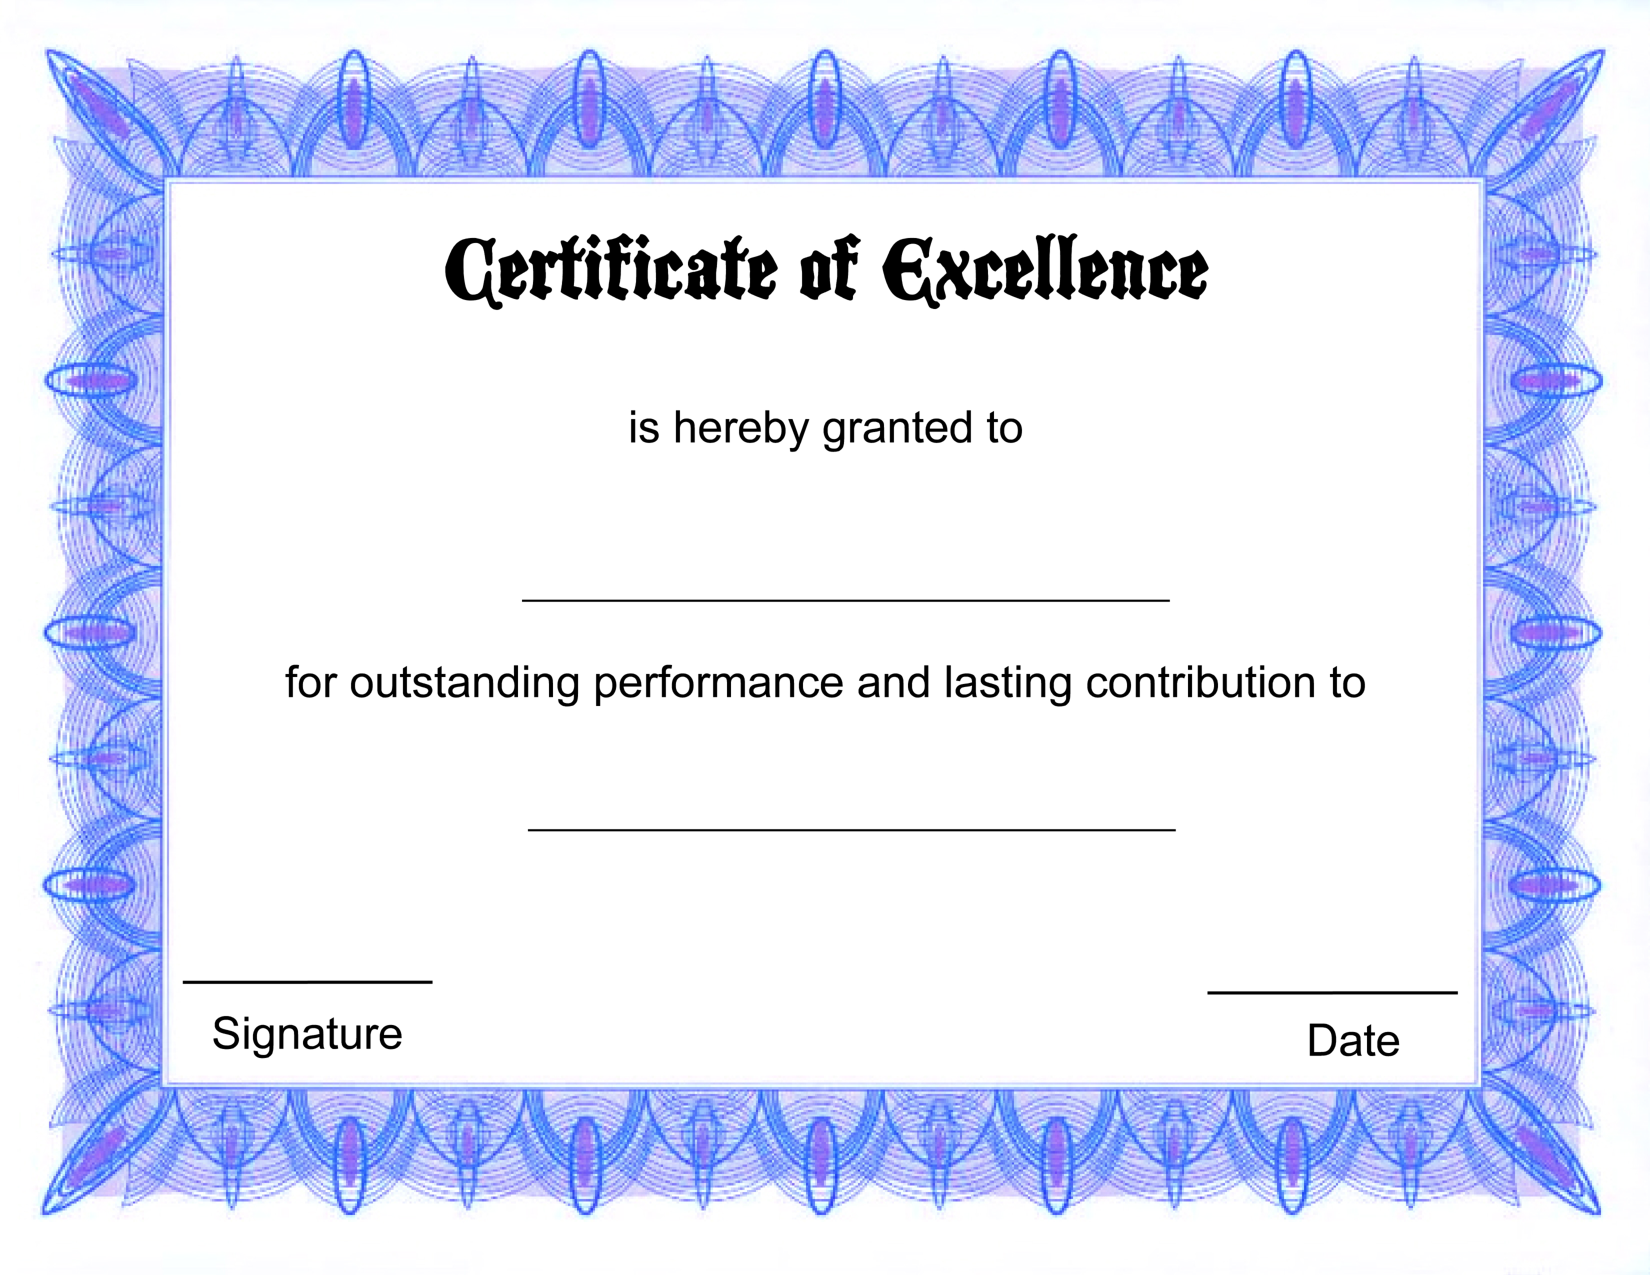 Blank Certificate Templates of Excellence | Certificate ...